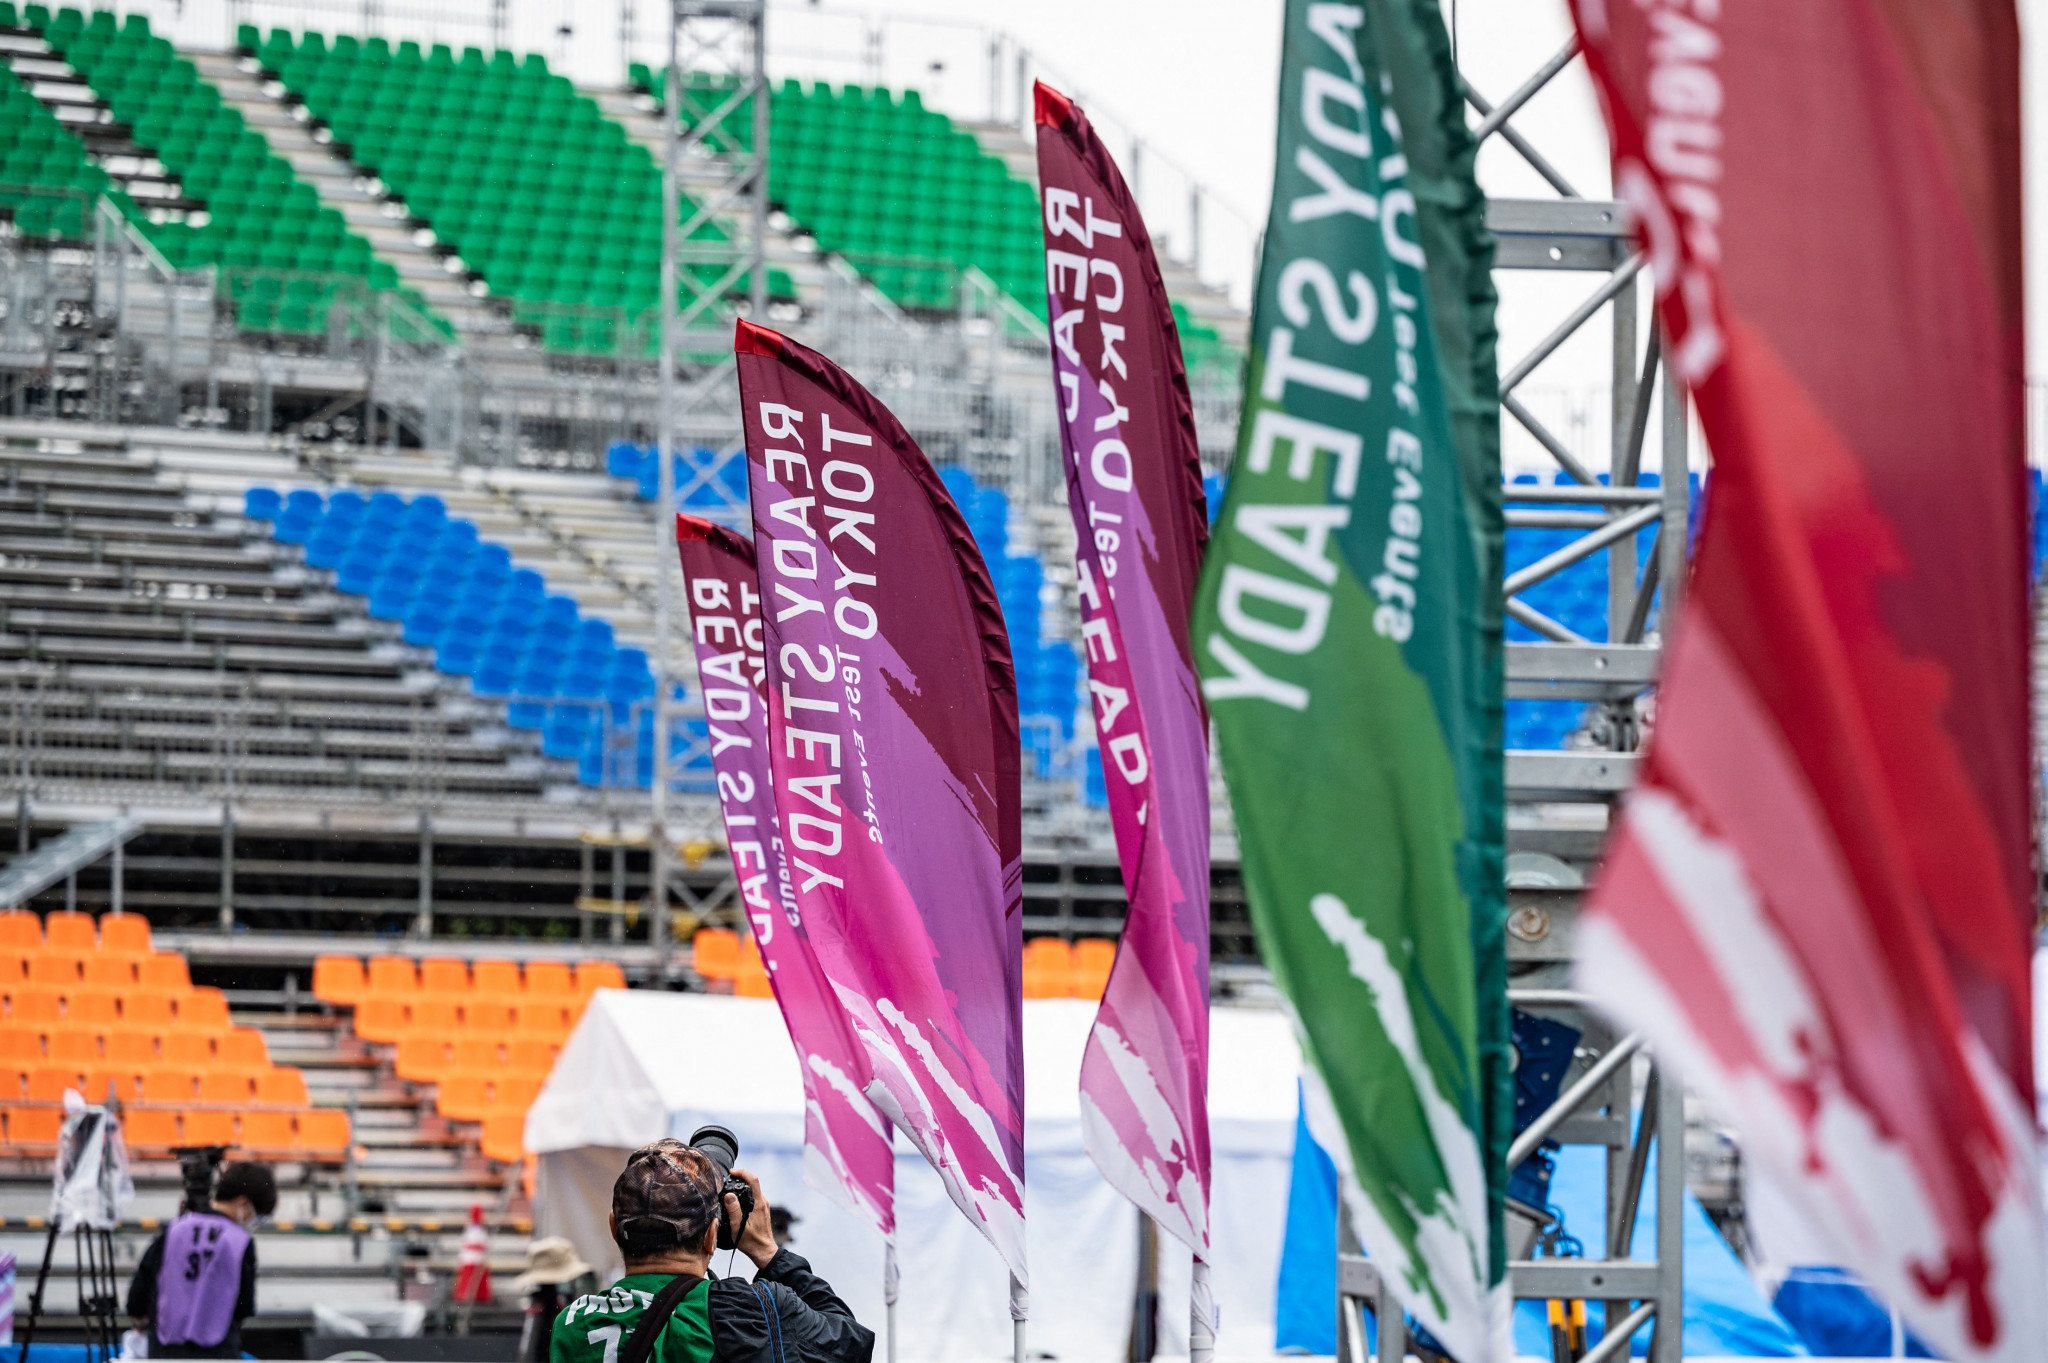 International Athletes' Forum sees IOC officials discuss COVID-19 measures at Tokyo 2020